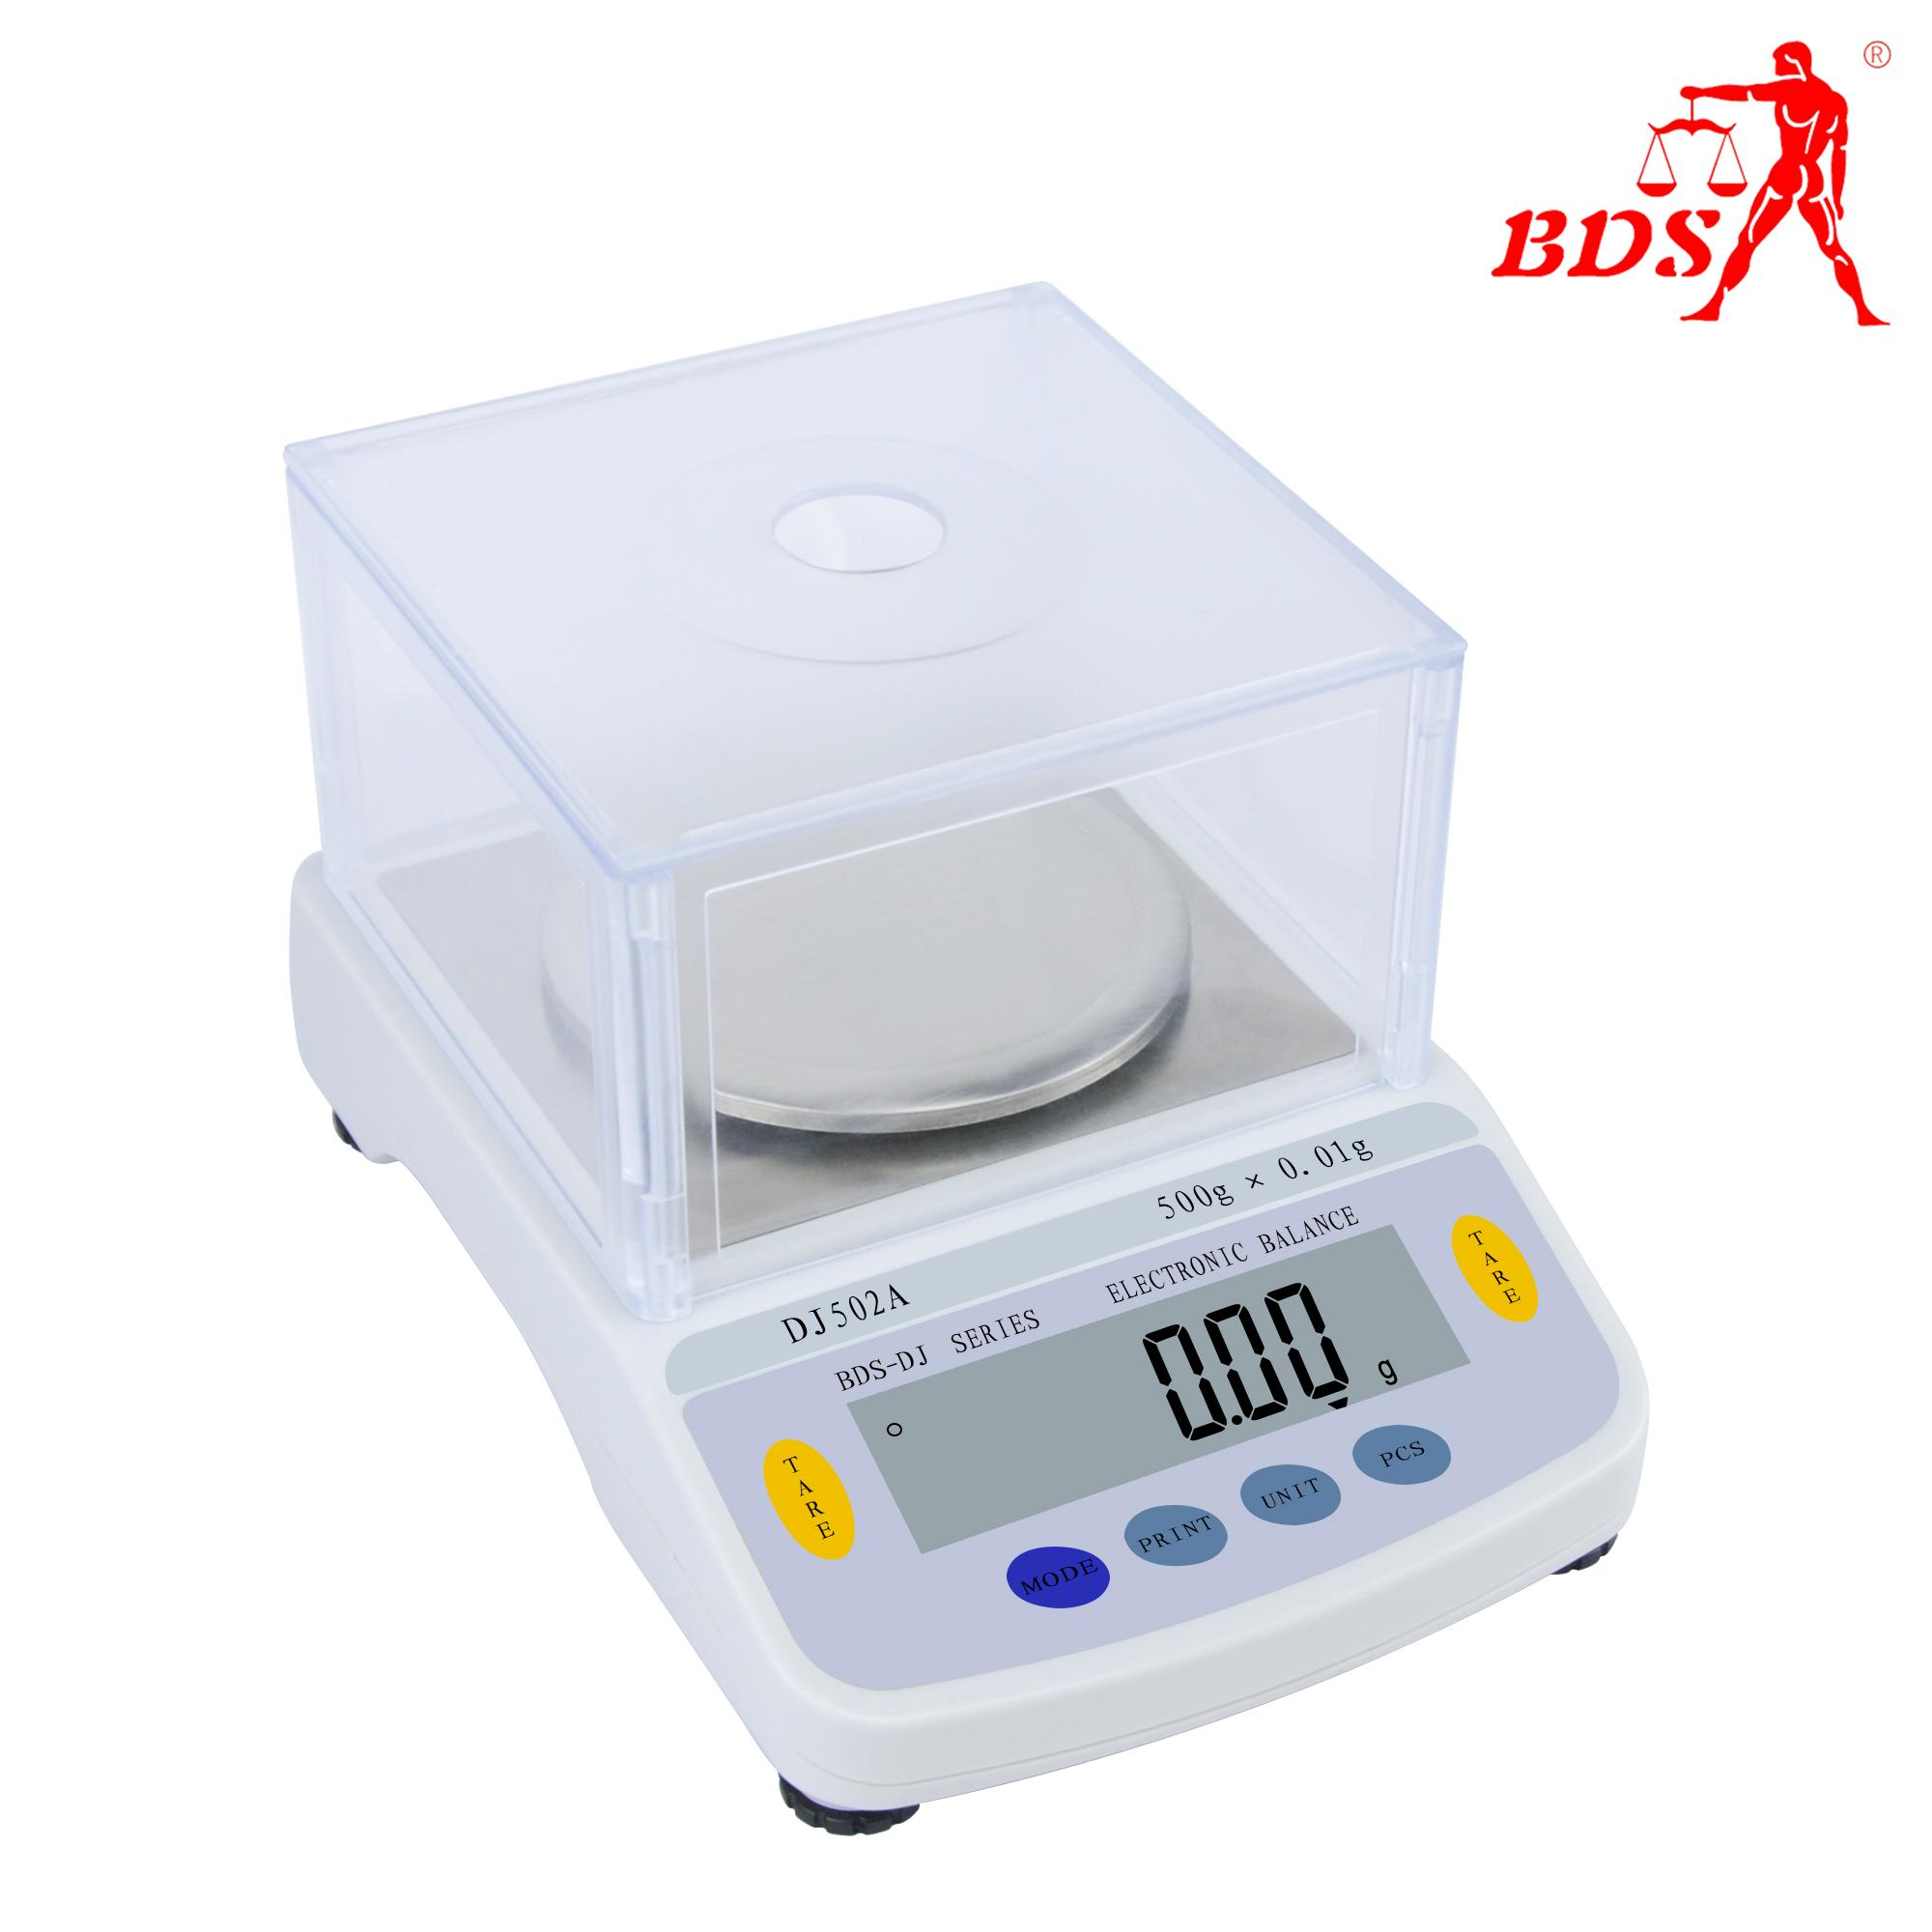 Shenzhen BDS DJ precision balance with super anti-overload function 2